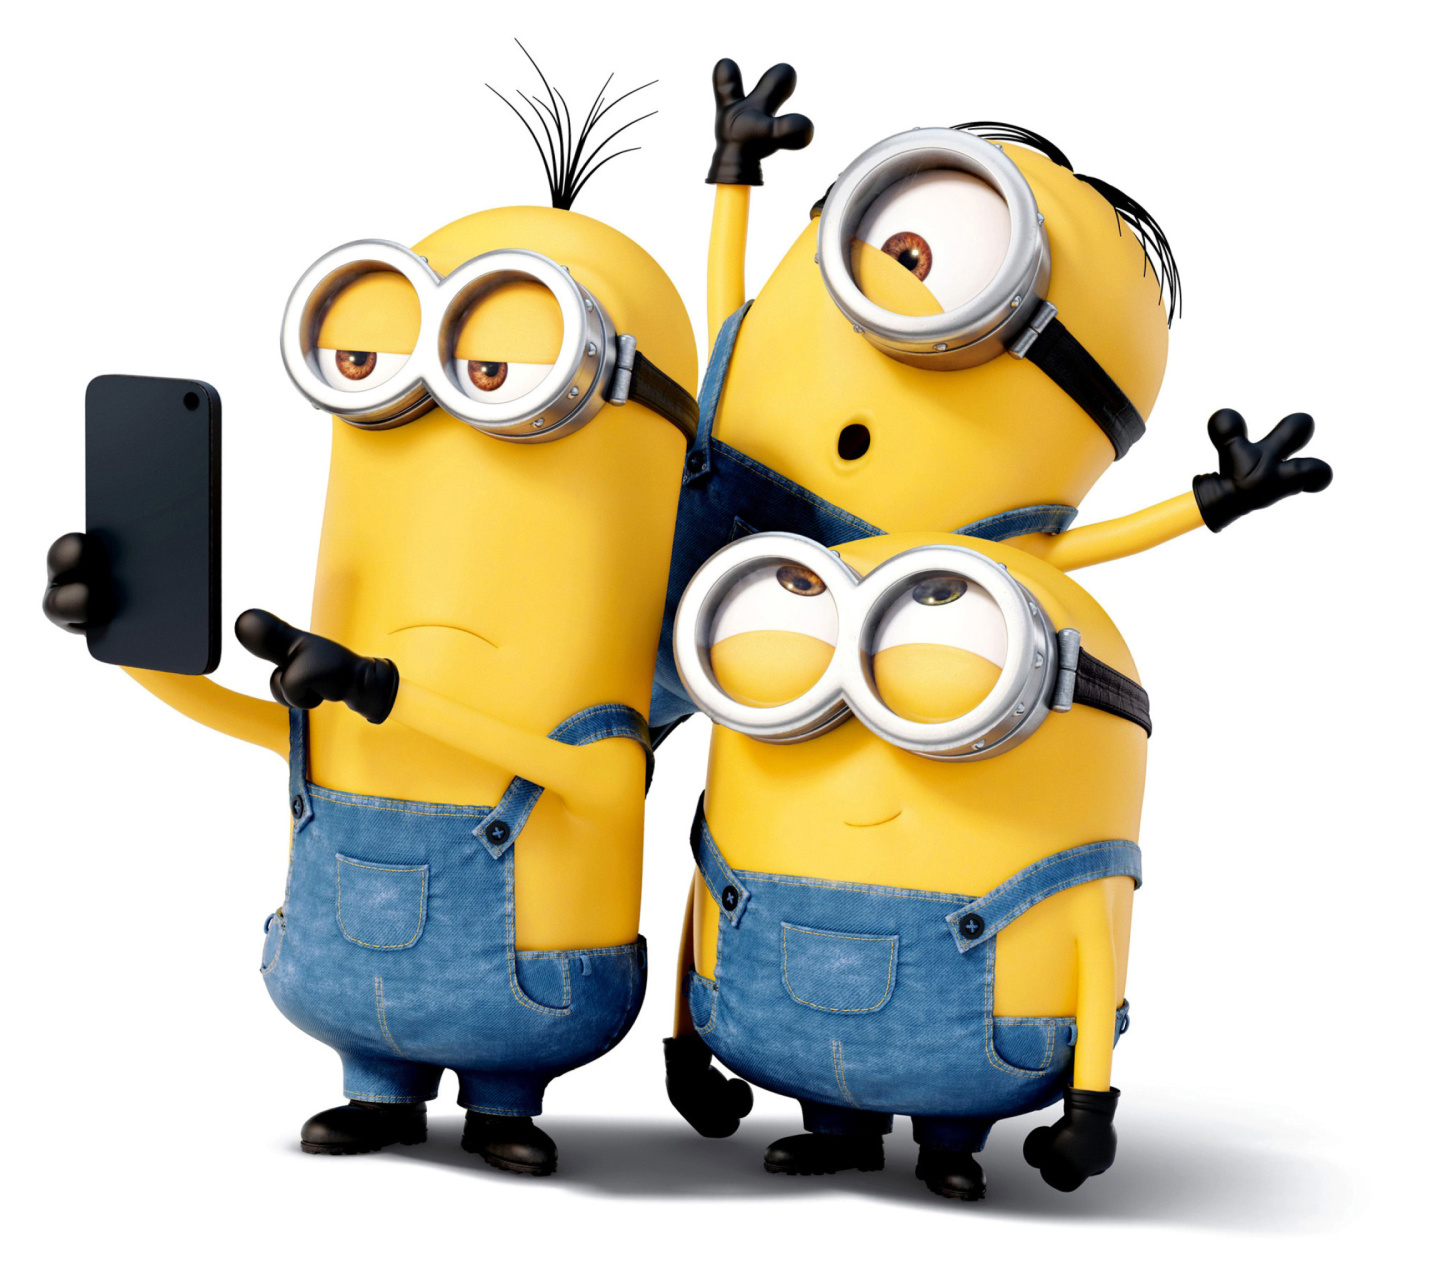 minions wallpaper for laptop wallpaper for android 720x1280